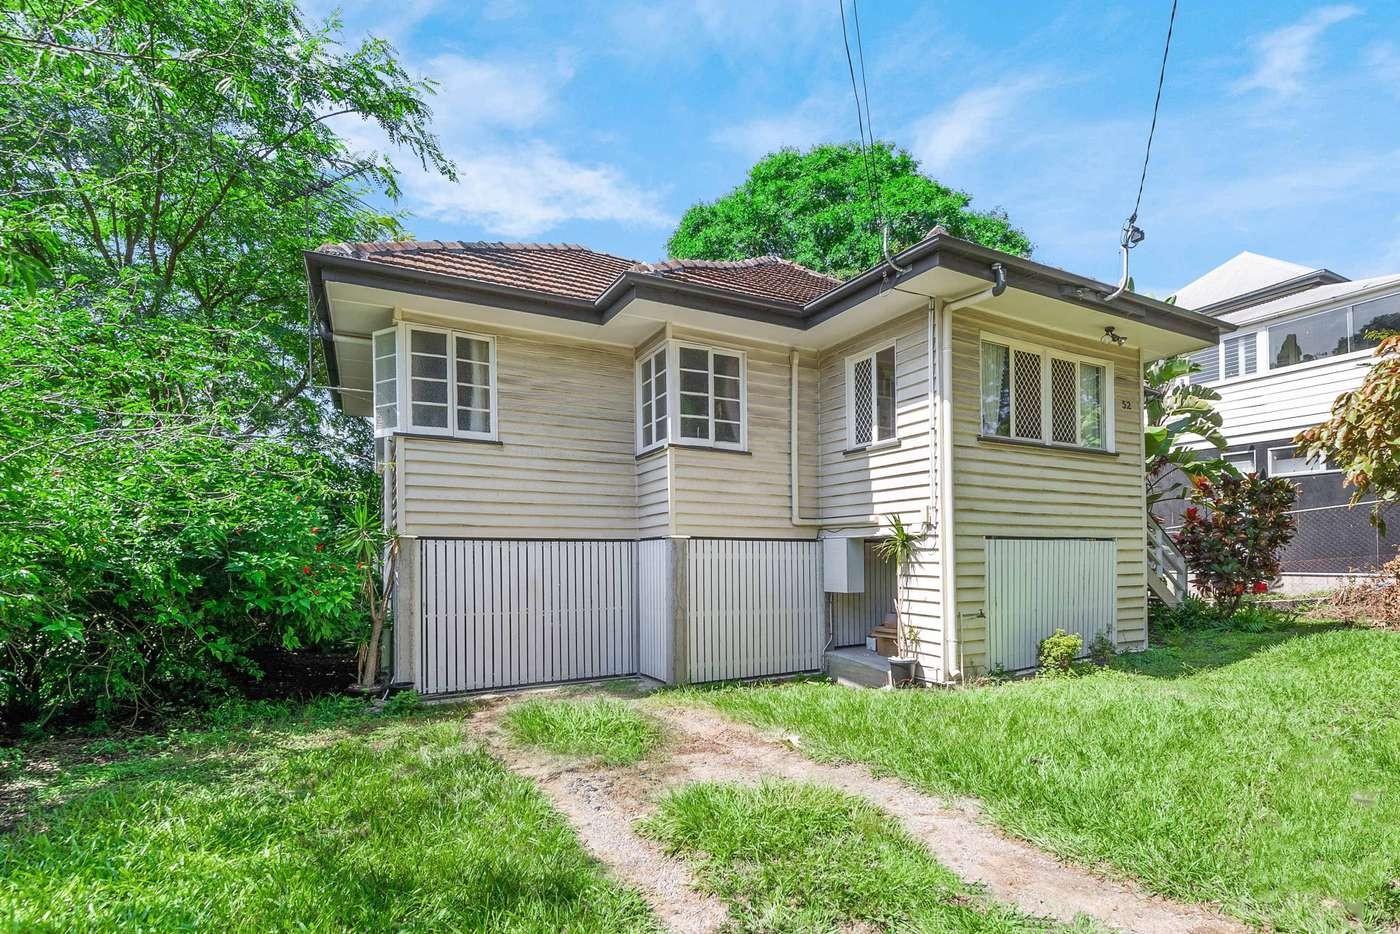 Main view of Homely house listing, 52 Haig Road, Milton QLD 4064